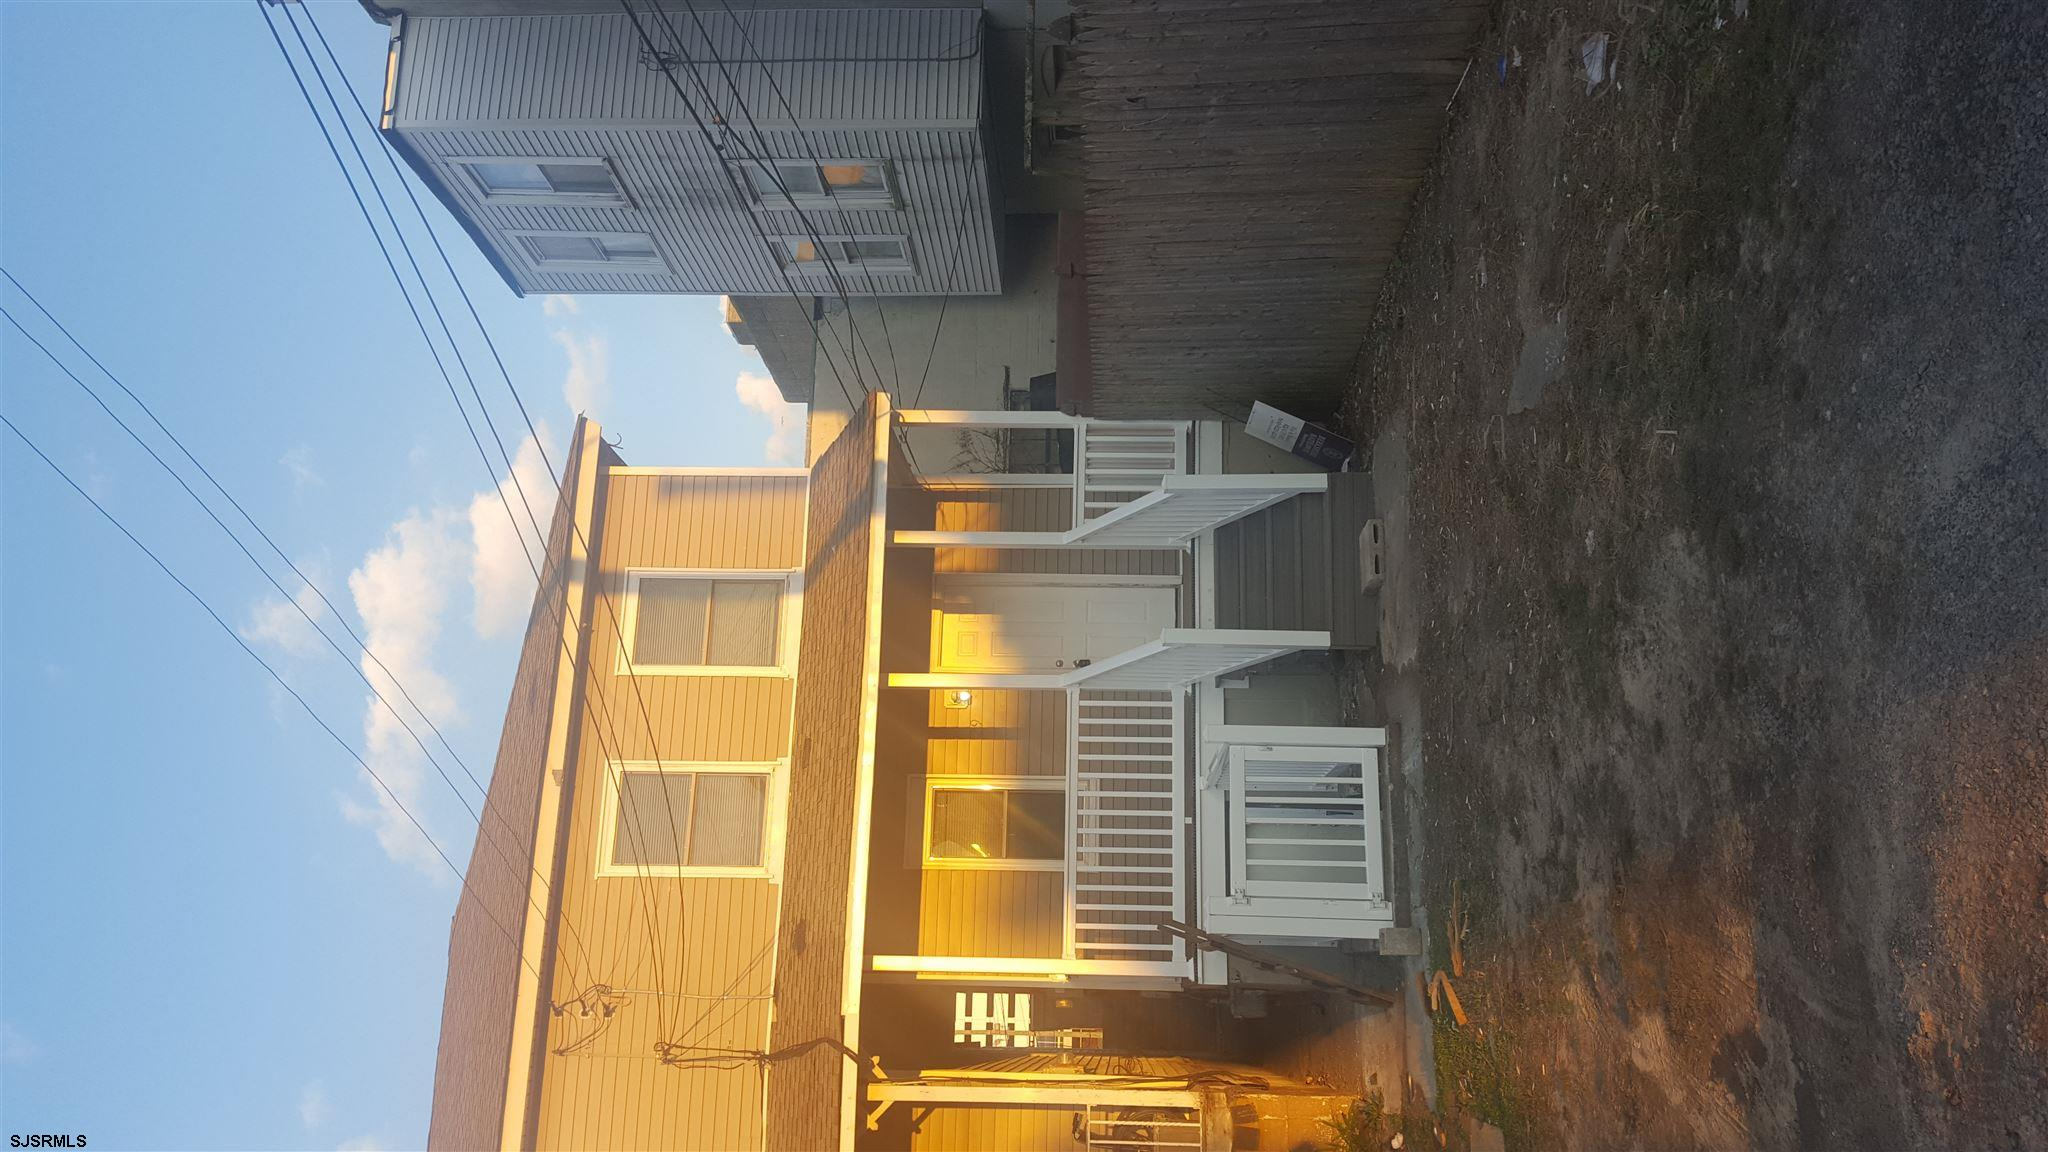 Completely Remodeled 2 bed 1.5 bath just over a block from the beach. The basement was previously us